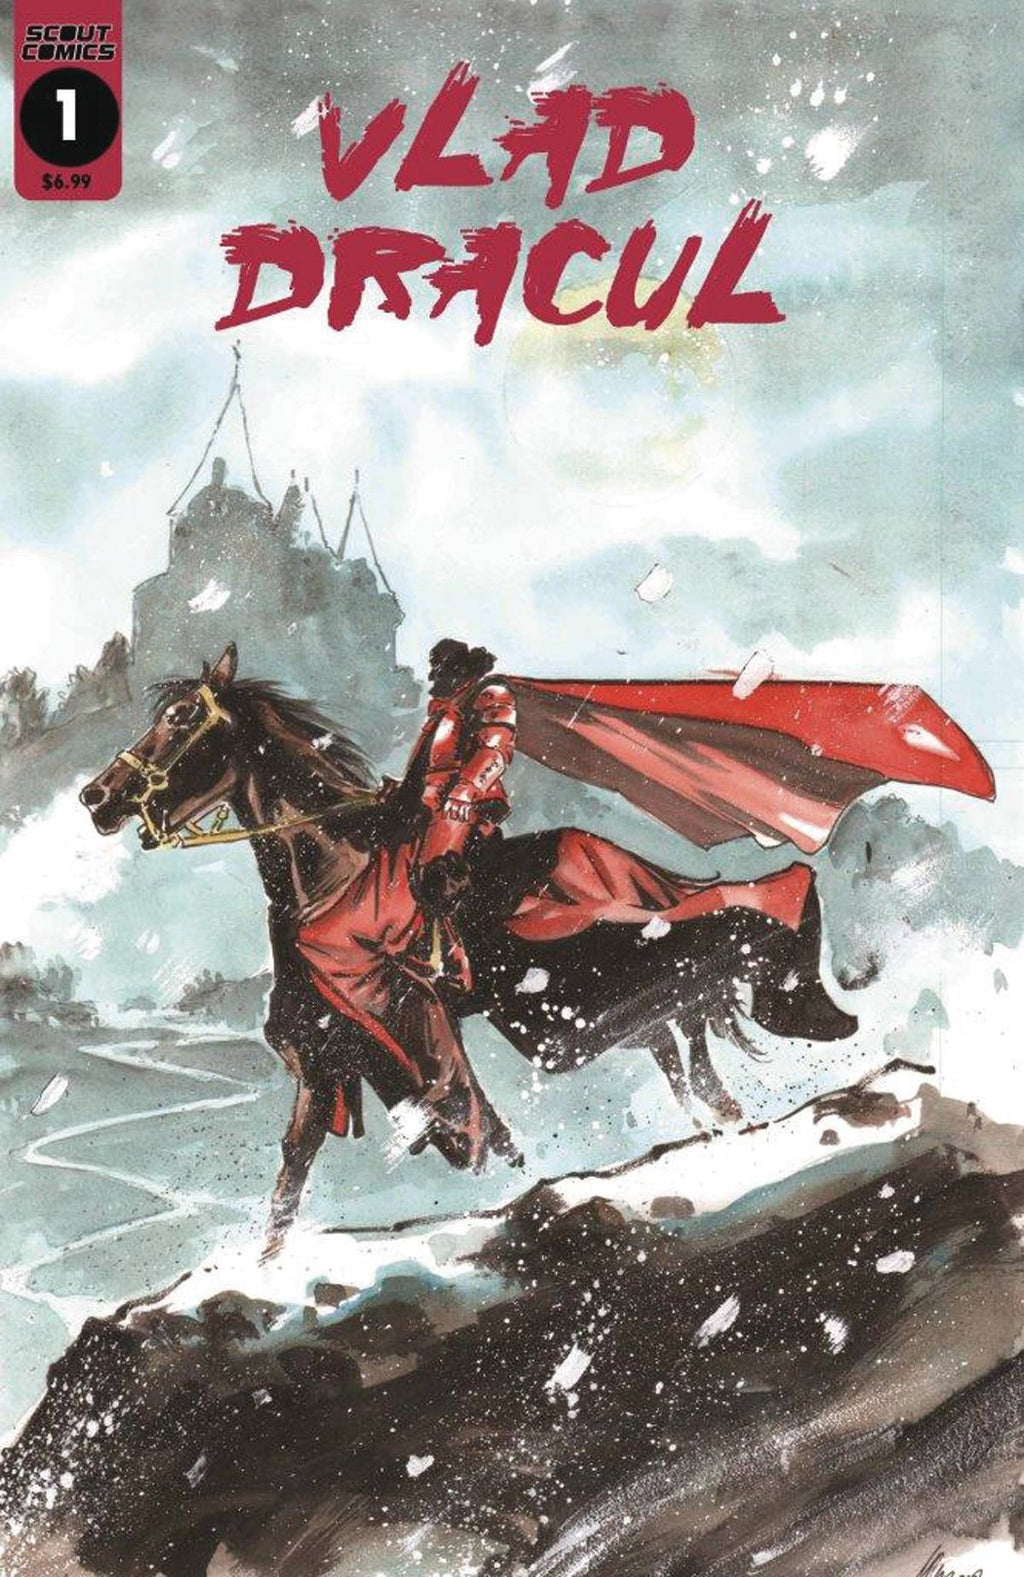 Vlad Dracul #1 - DIGITAL COPY